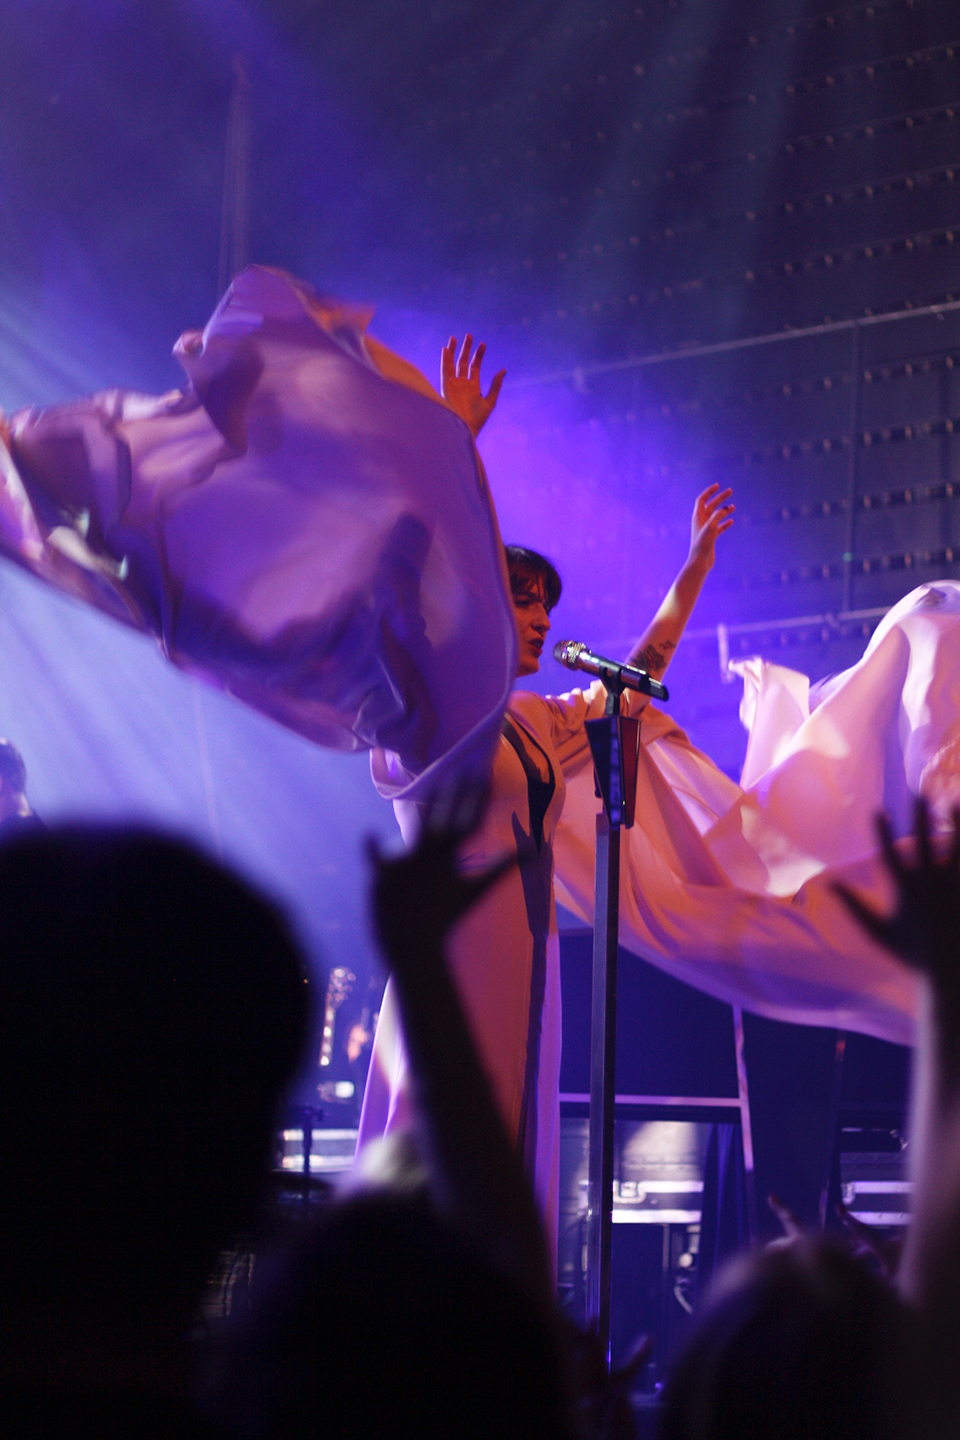 concert-florence-machine-paris-10